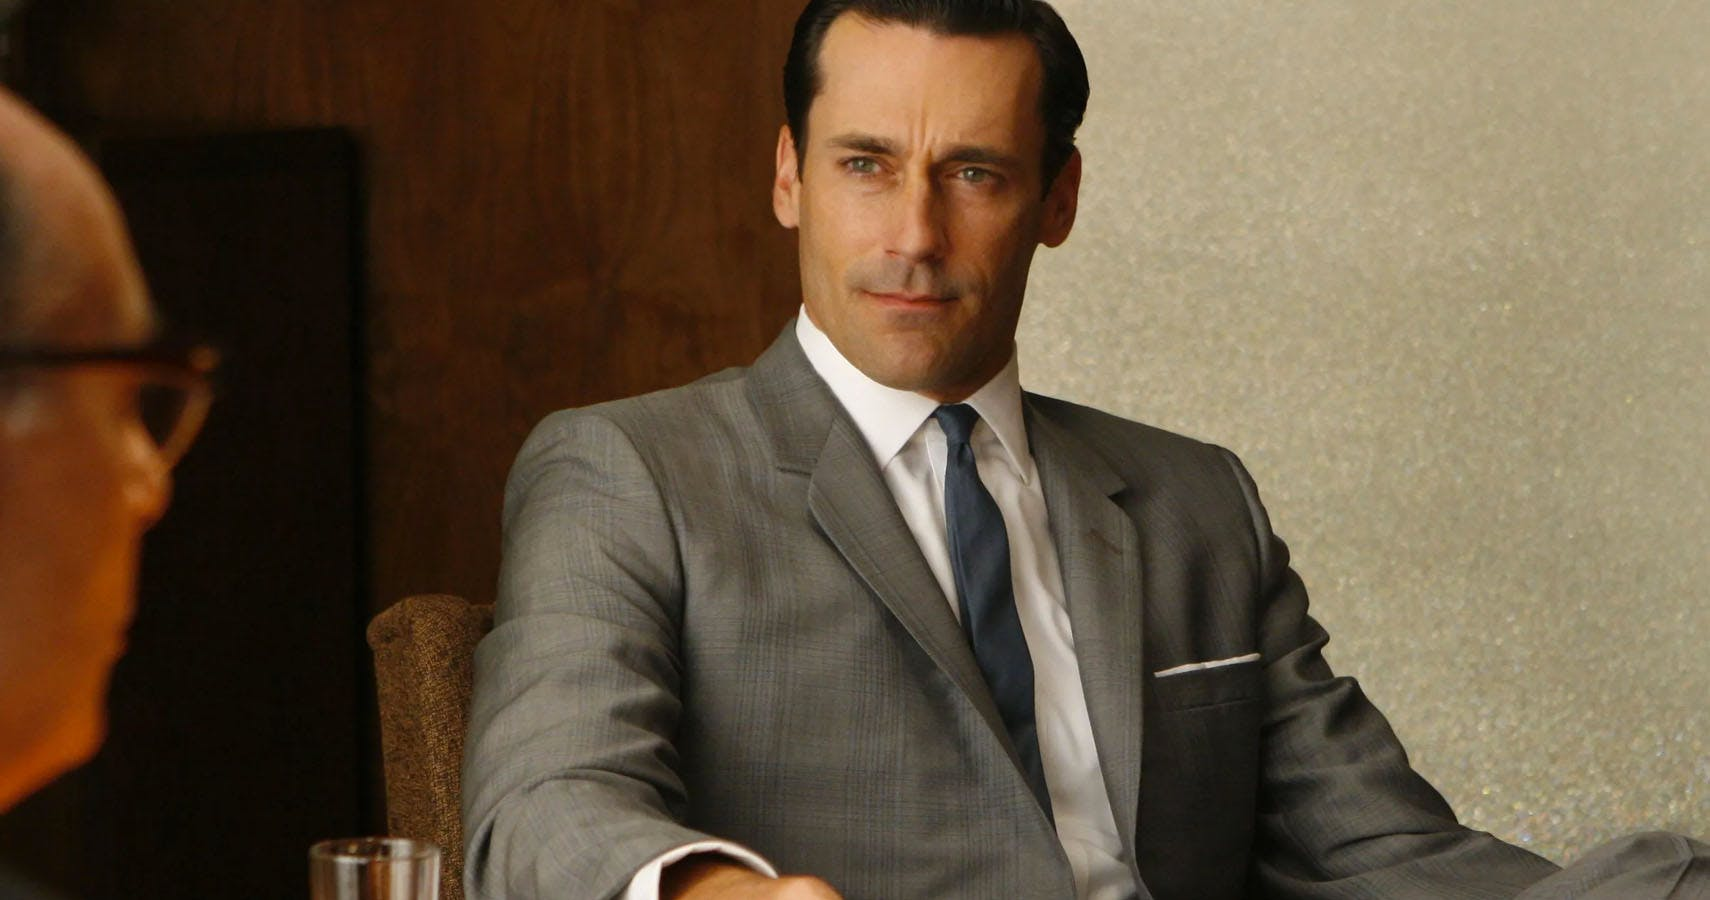 Mad Men: Don Draper